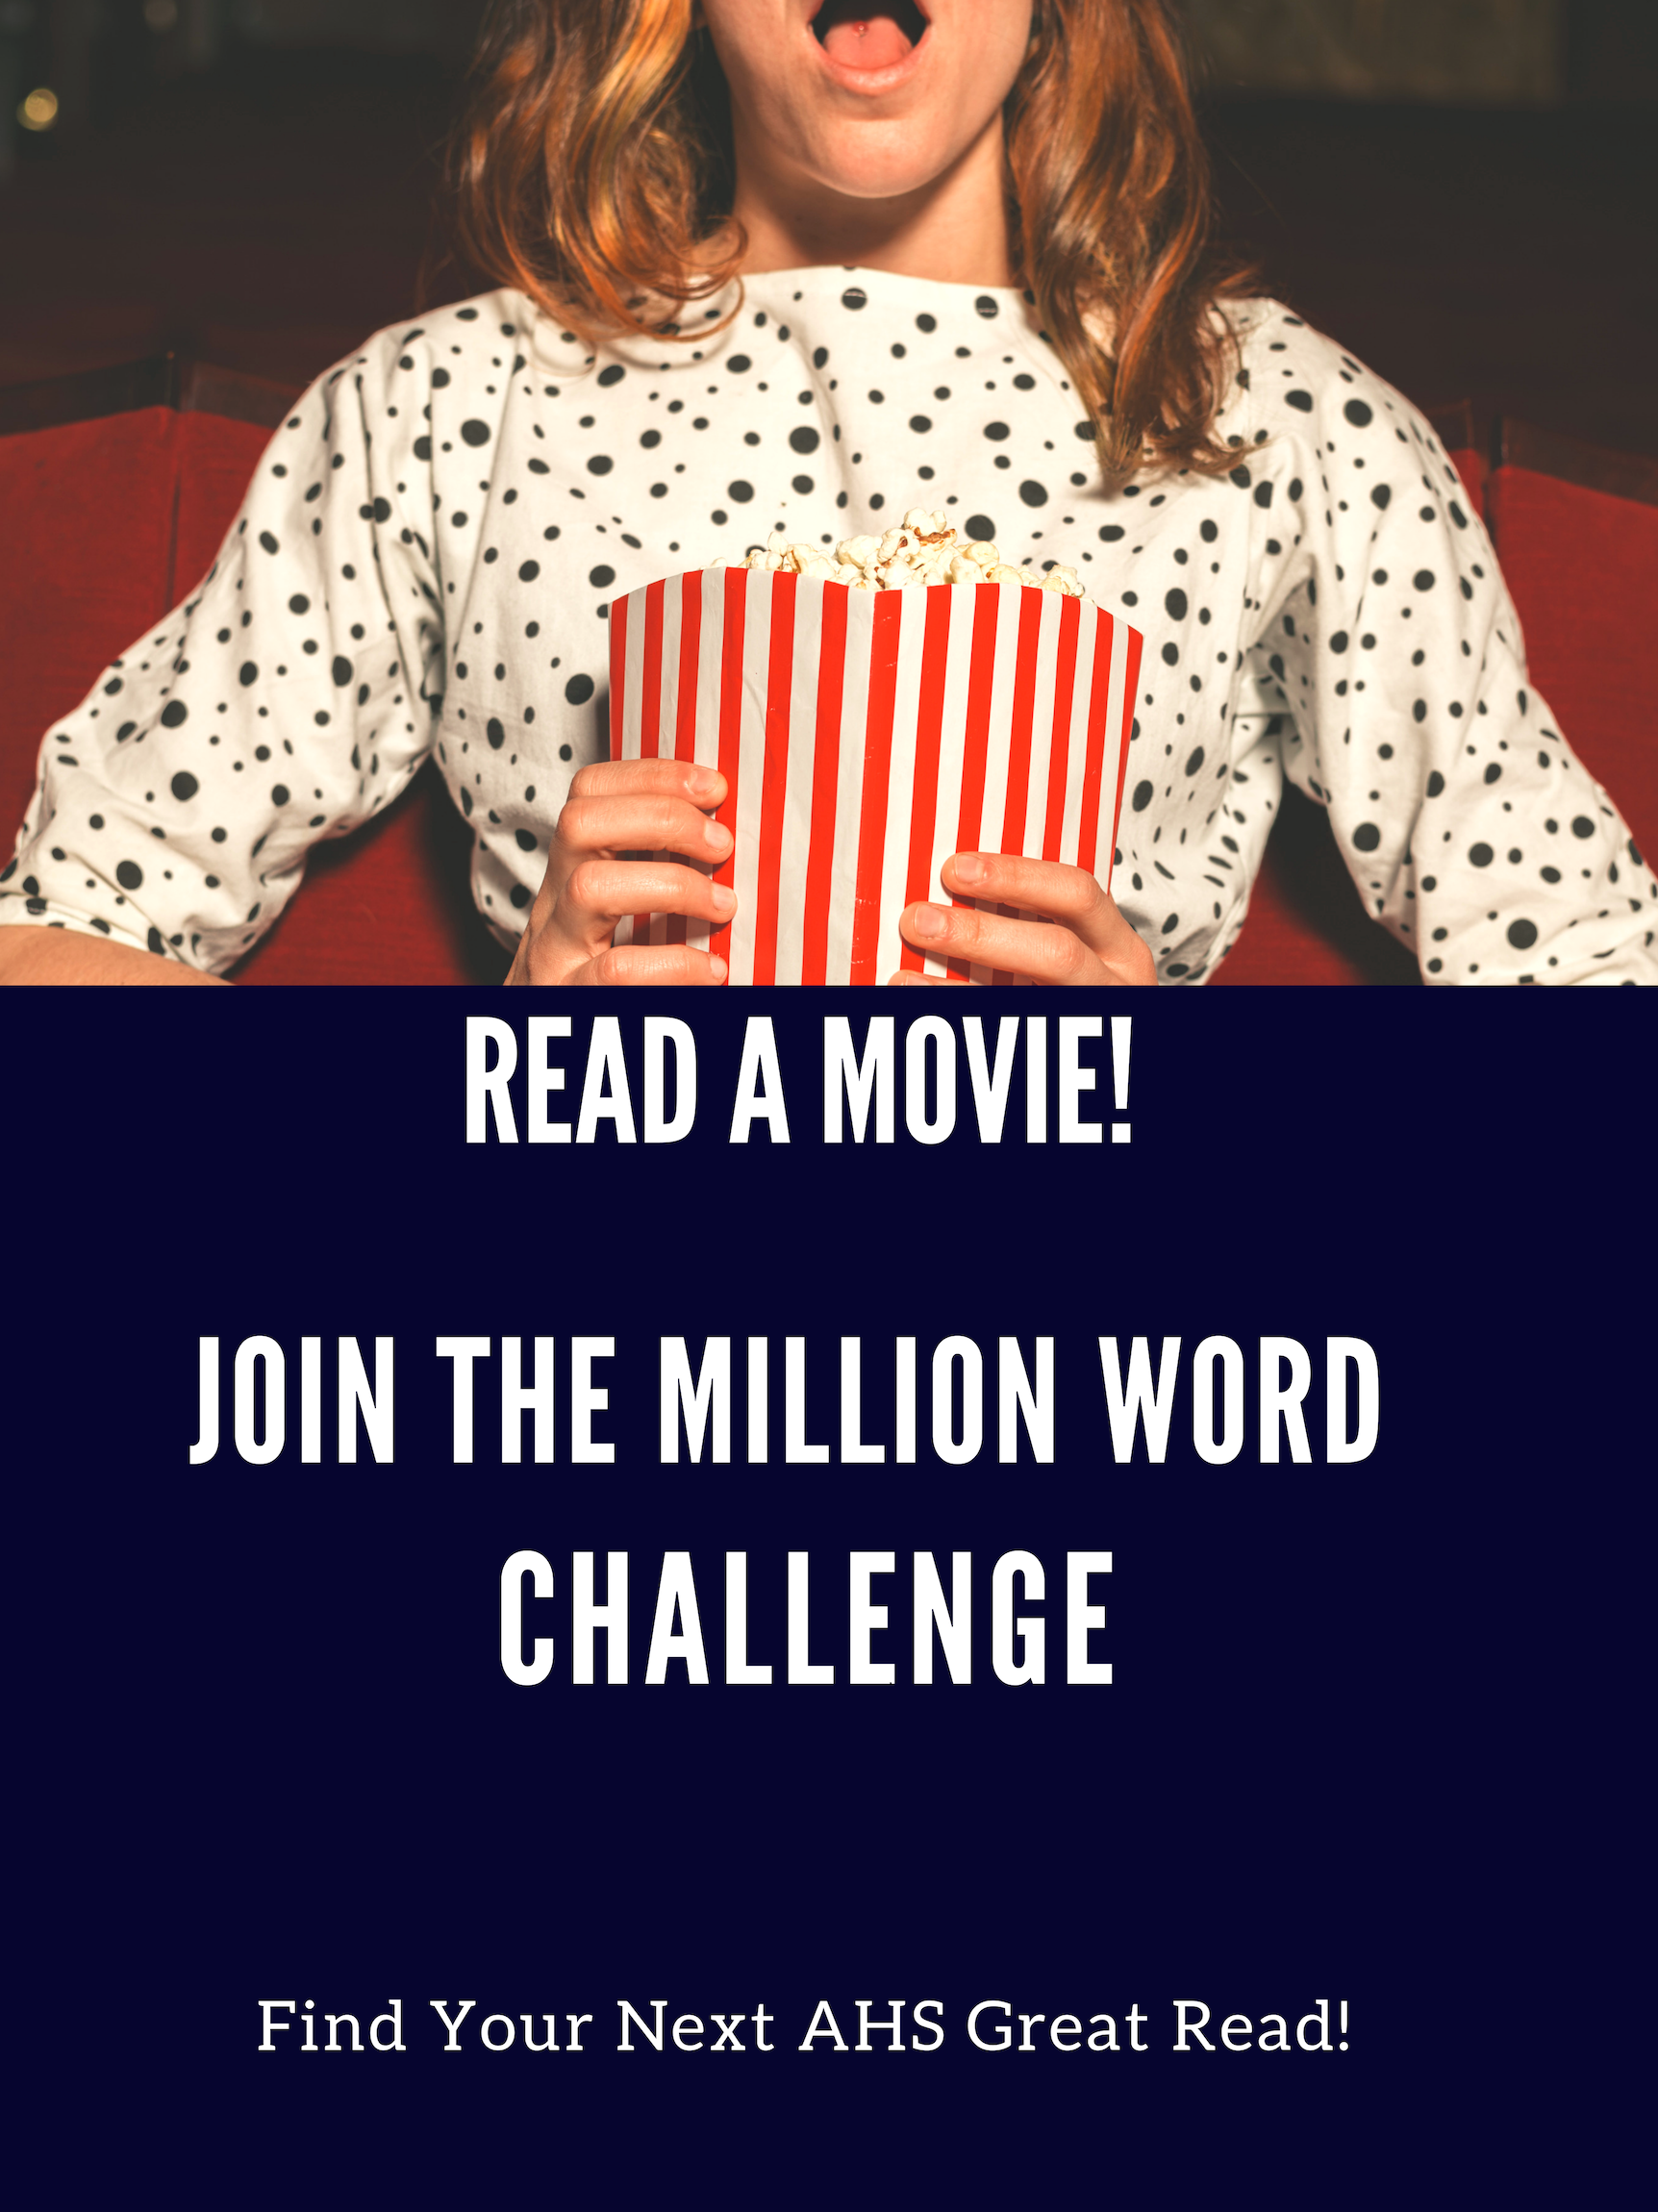 You Can Meet The Million Word Reading Challenge Image